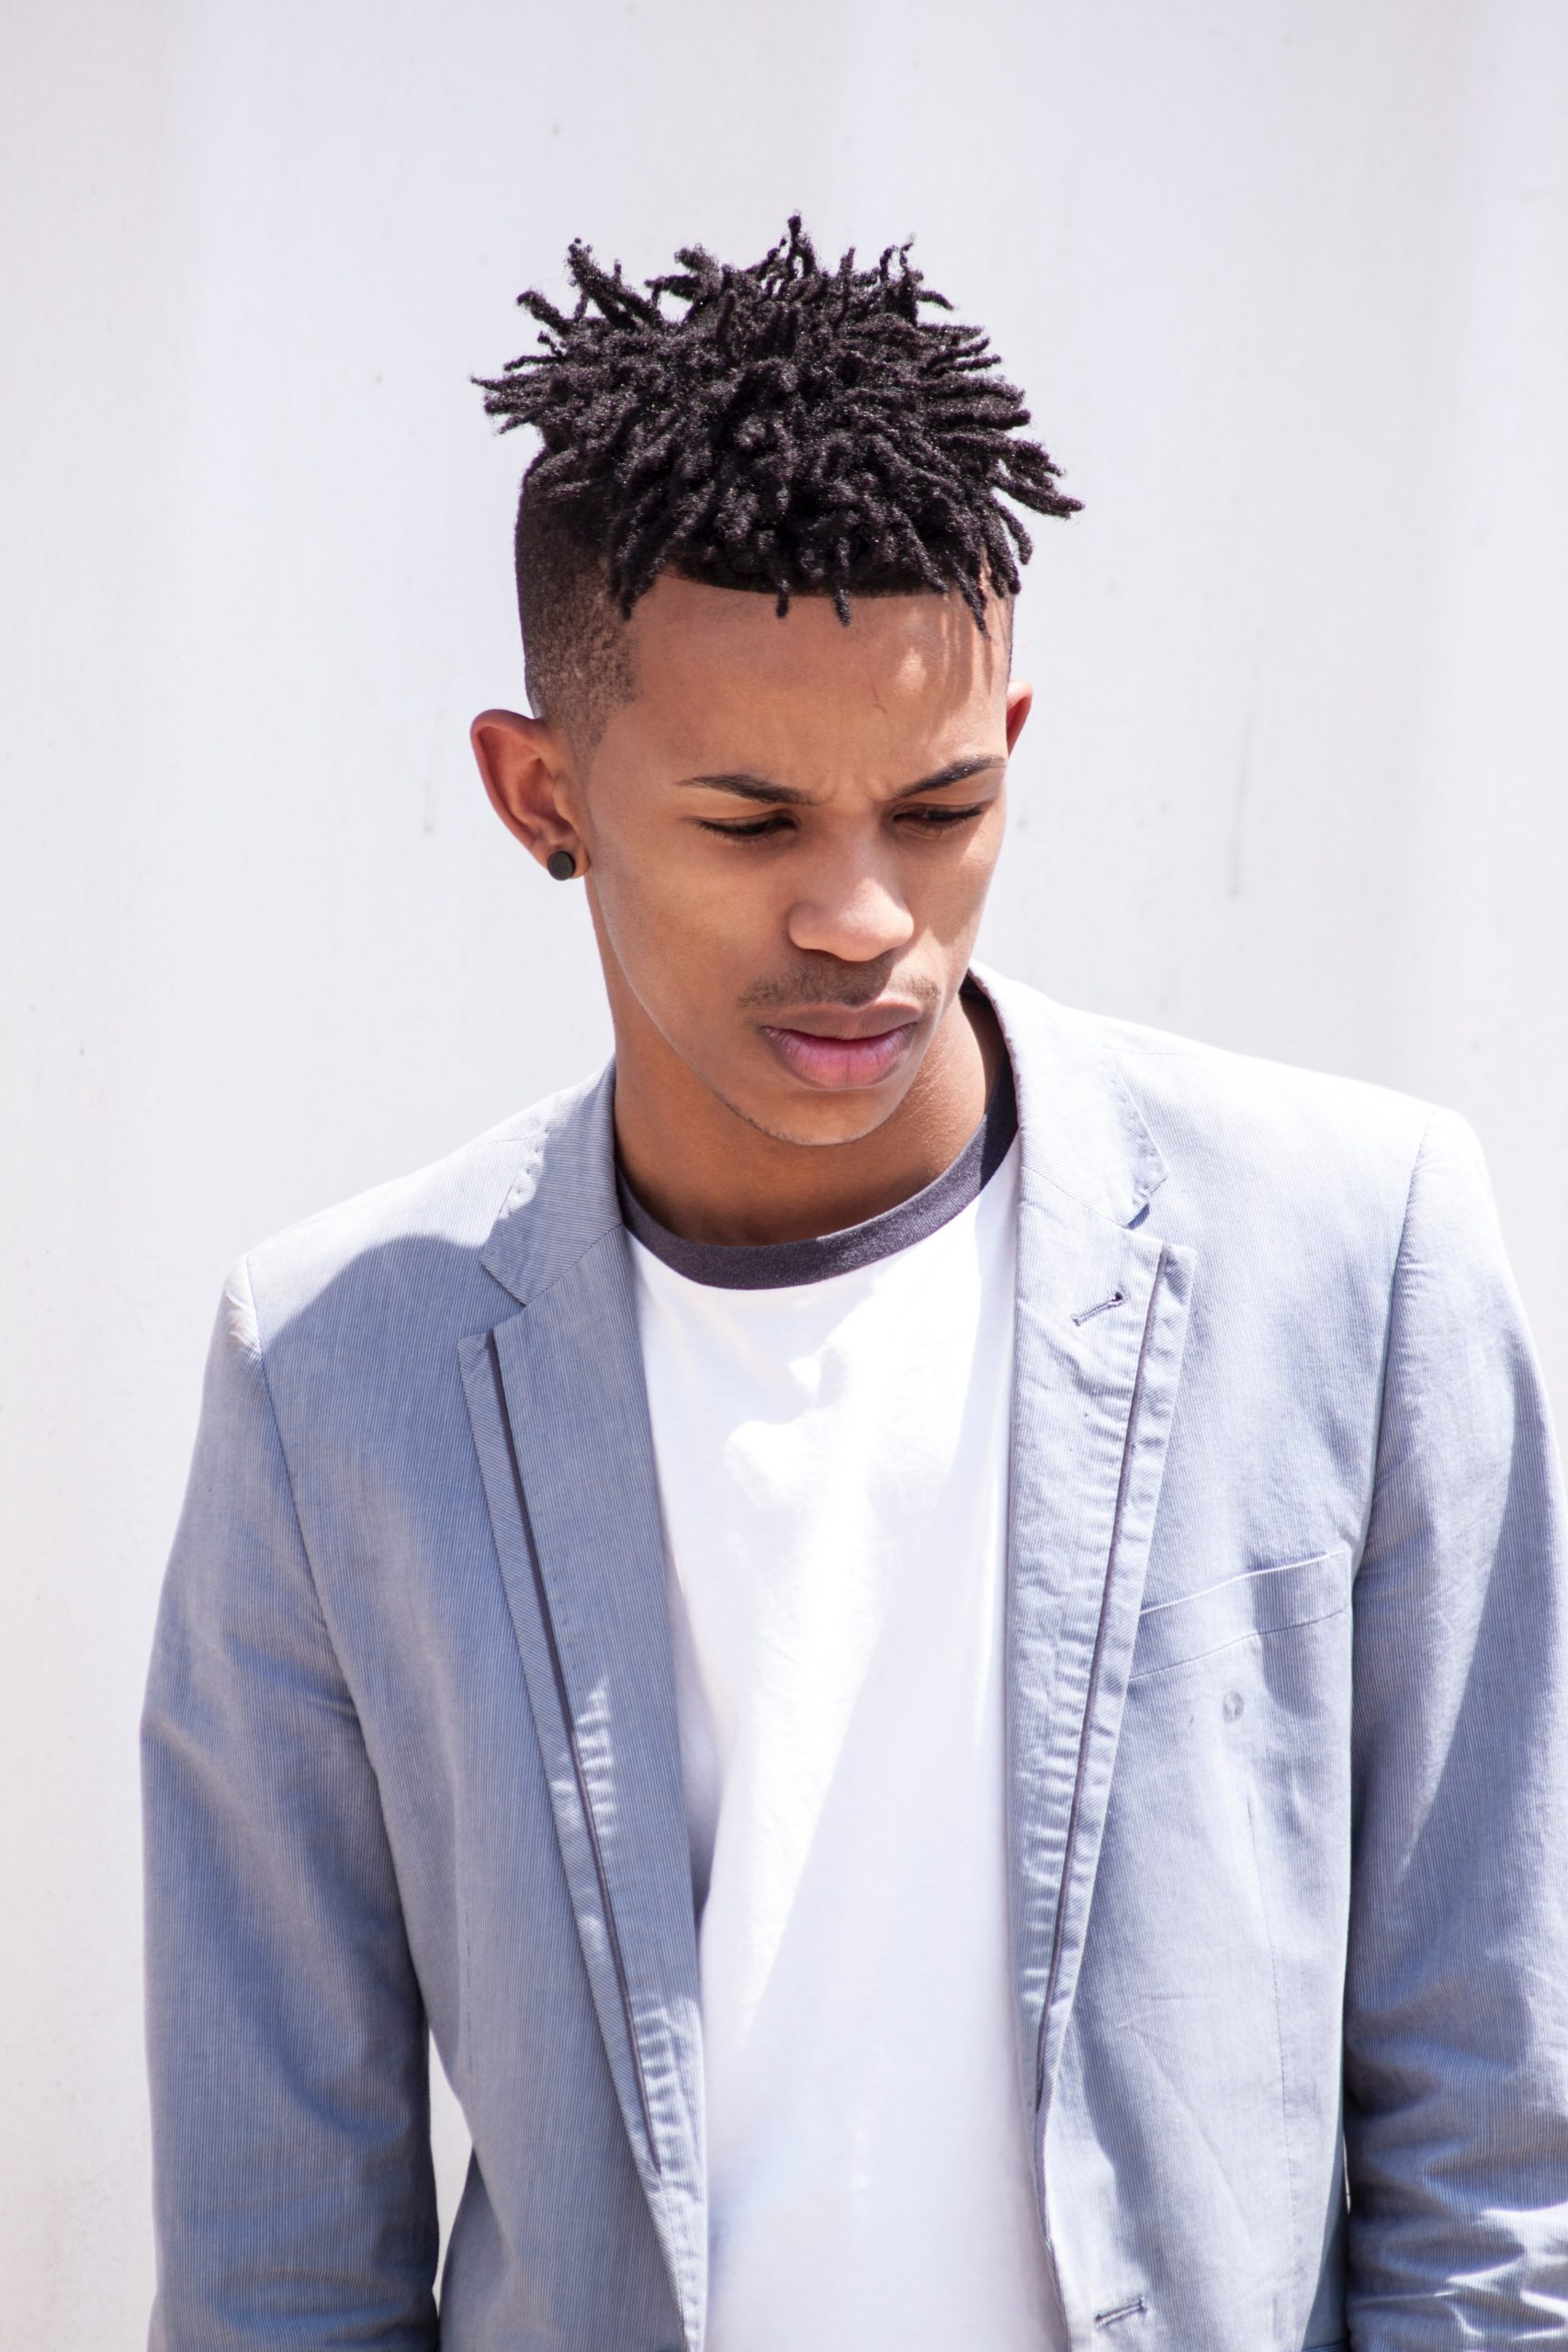 short dreadlocks with fade, dreads, locs, fade hairstyles, short haircuts for men, curly hairstyles for men